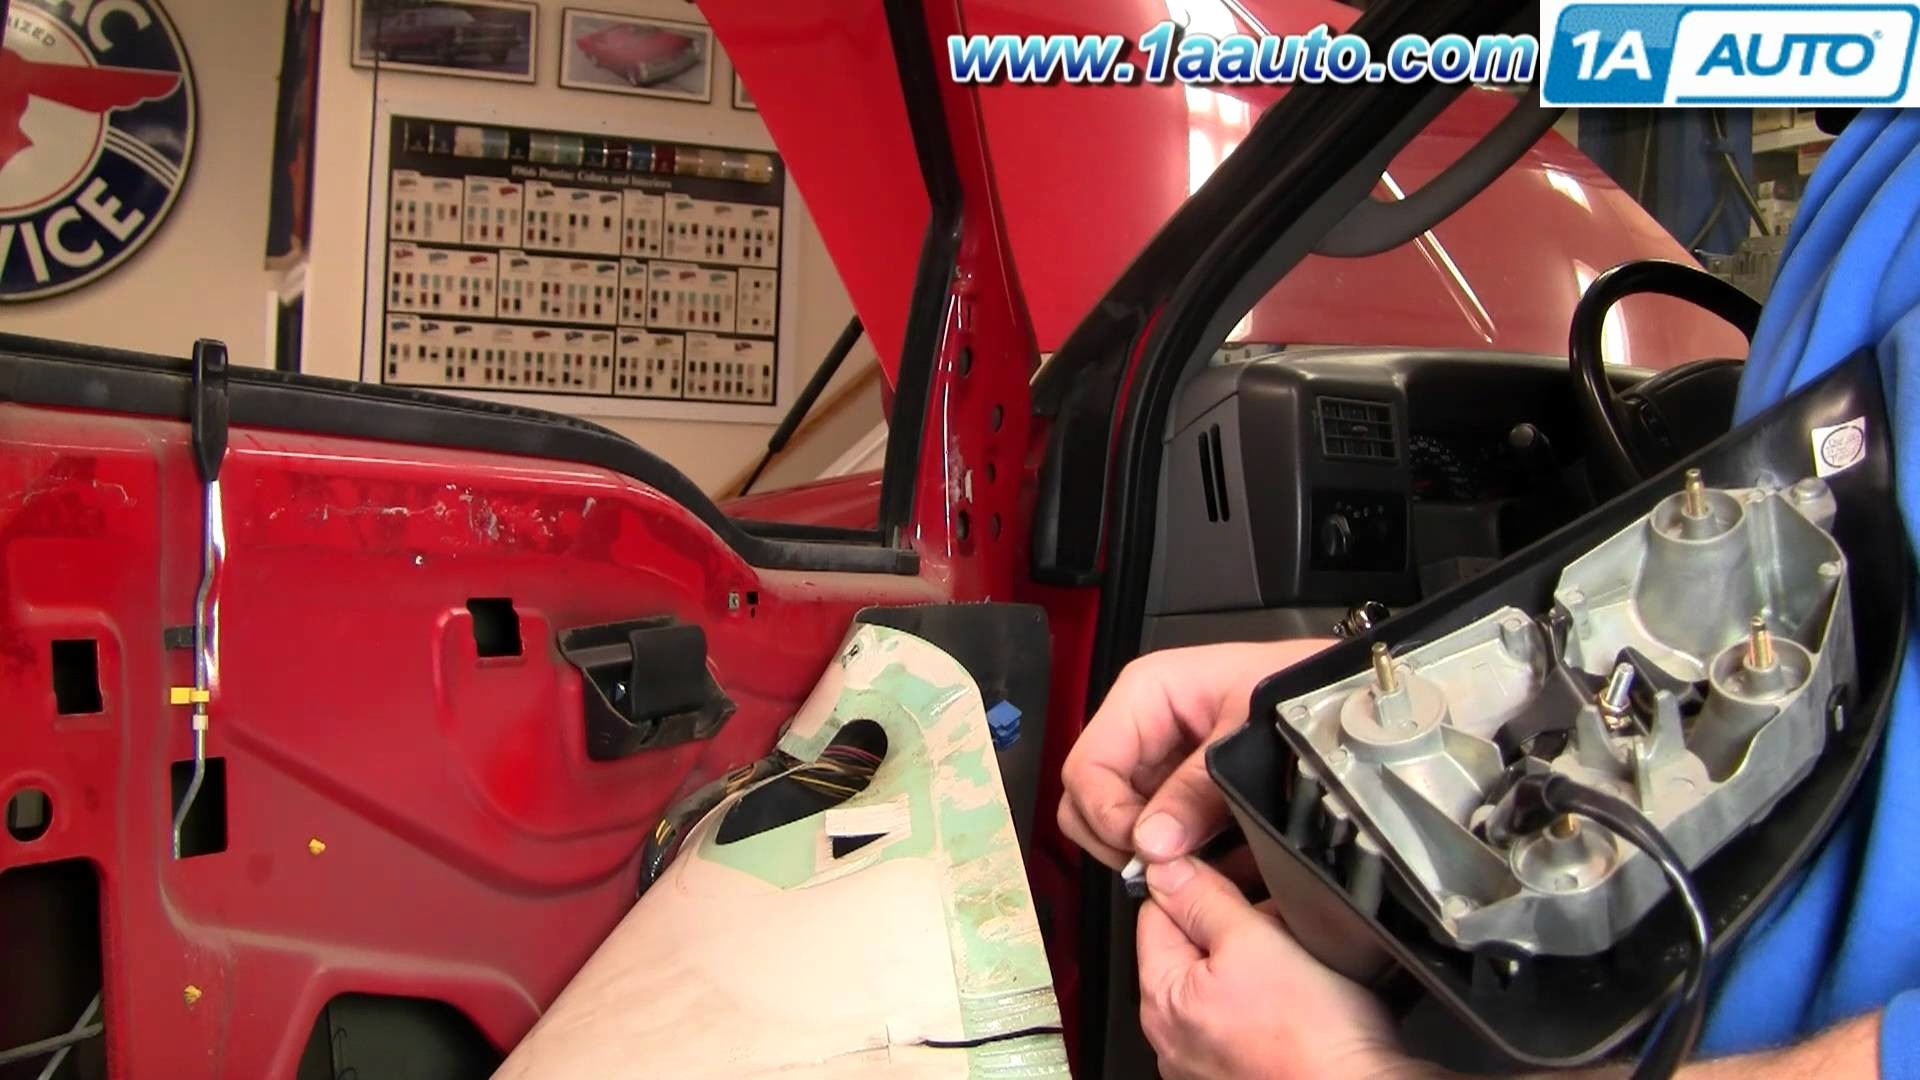 How To Install Replace Broken Side Rear View Mirror 99-07 Ford F250 Super Duty 1AAuto.com